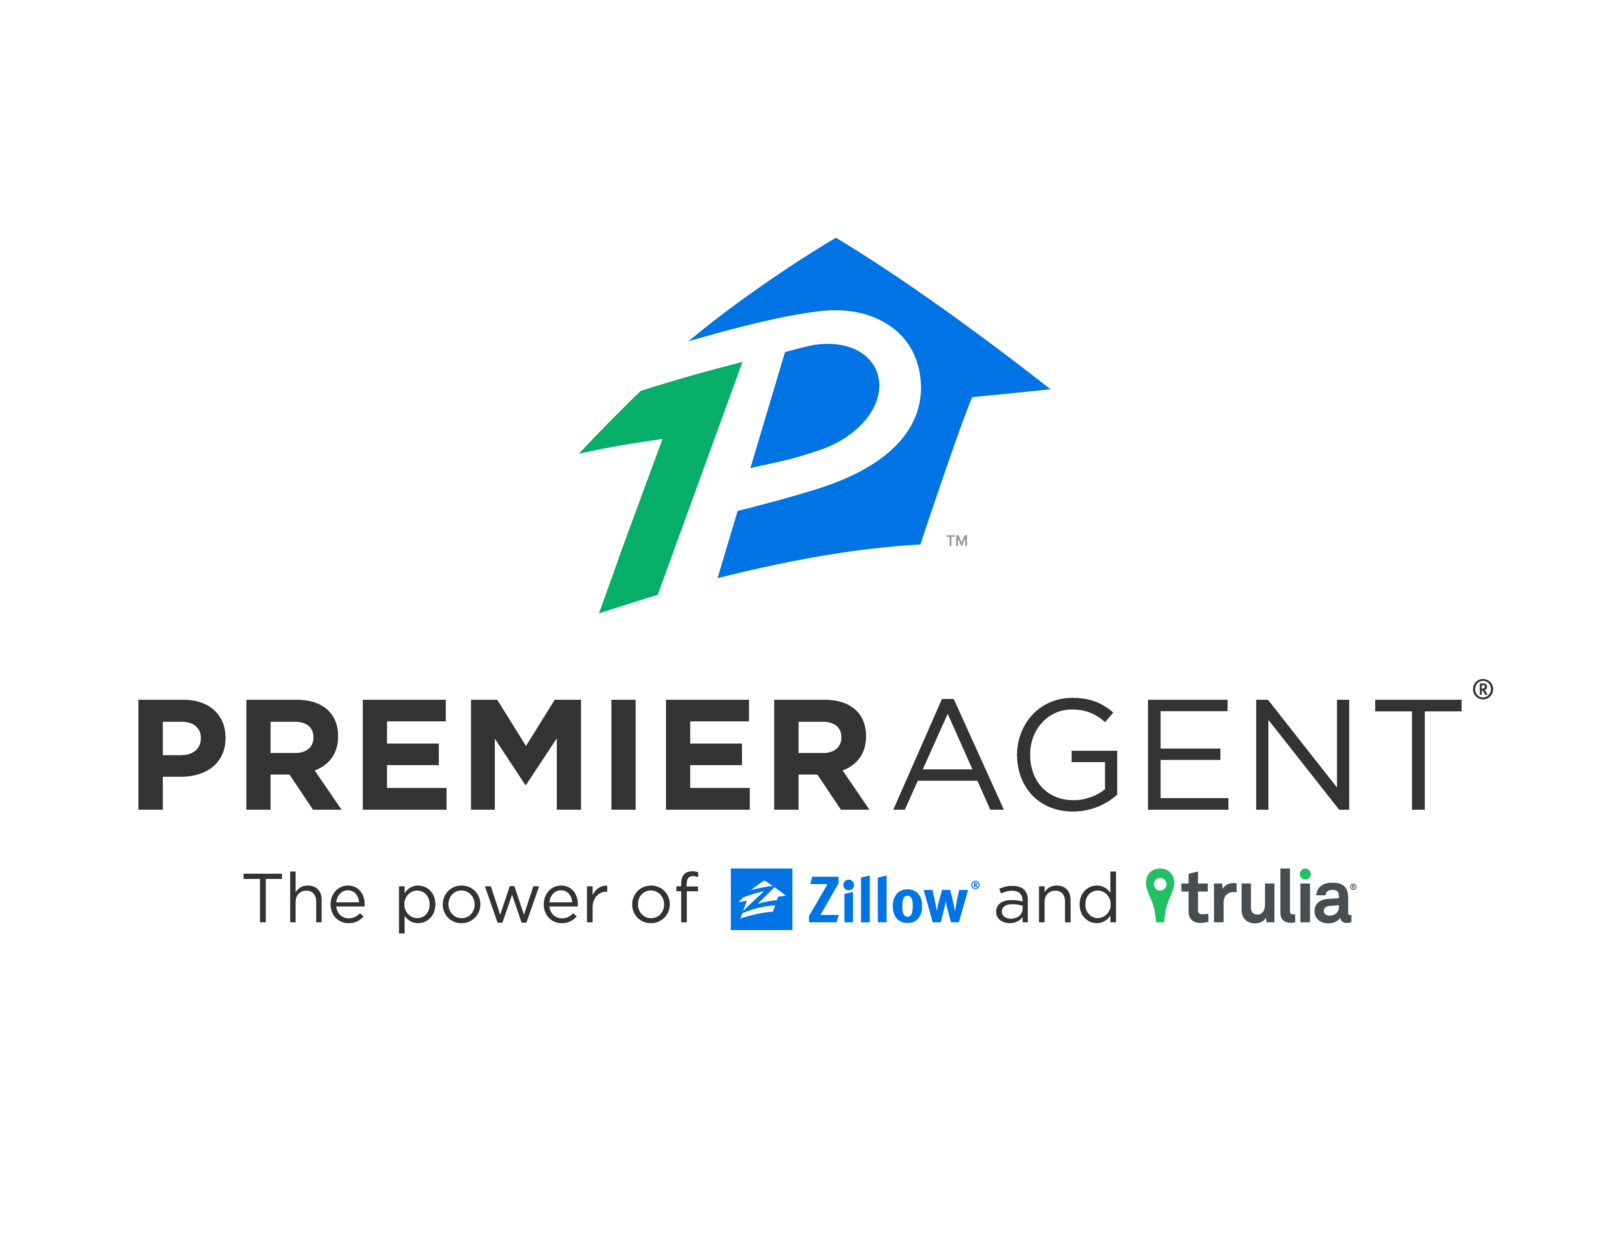 Wendy Papasan, Zillow Premier Agent